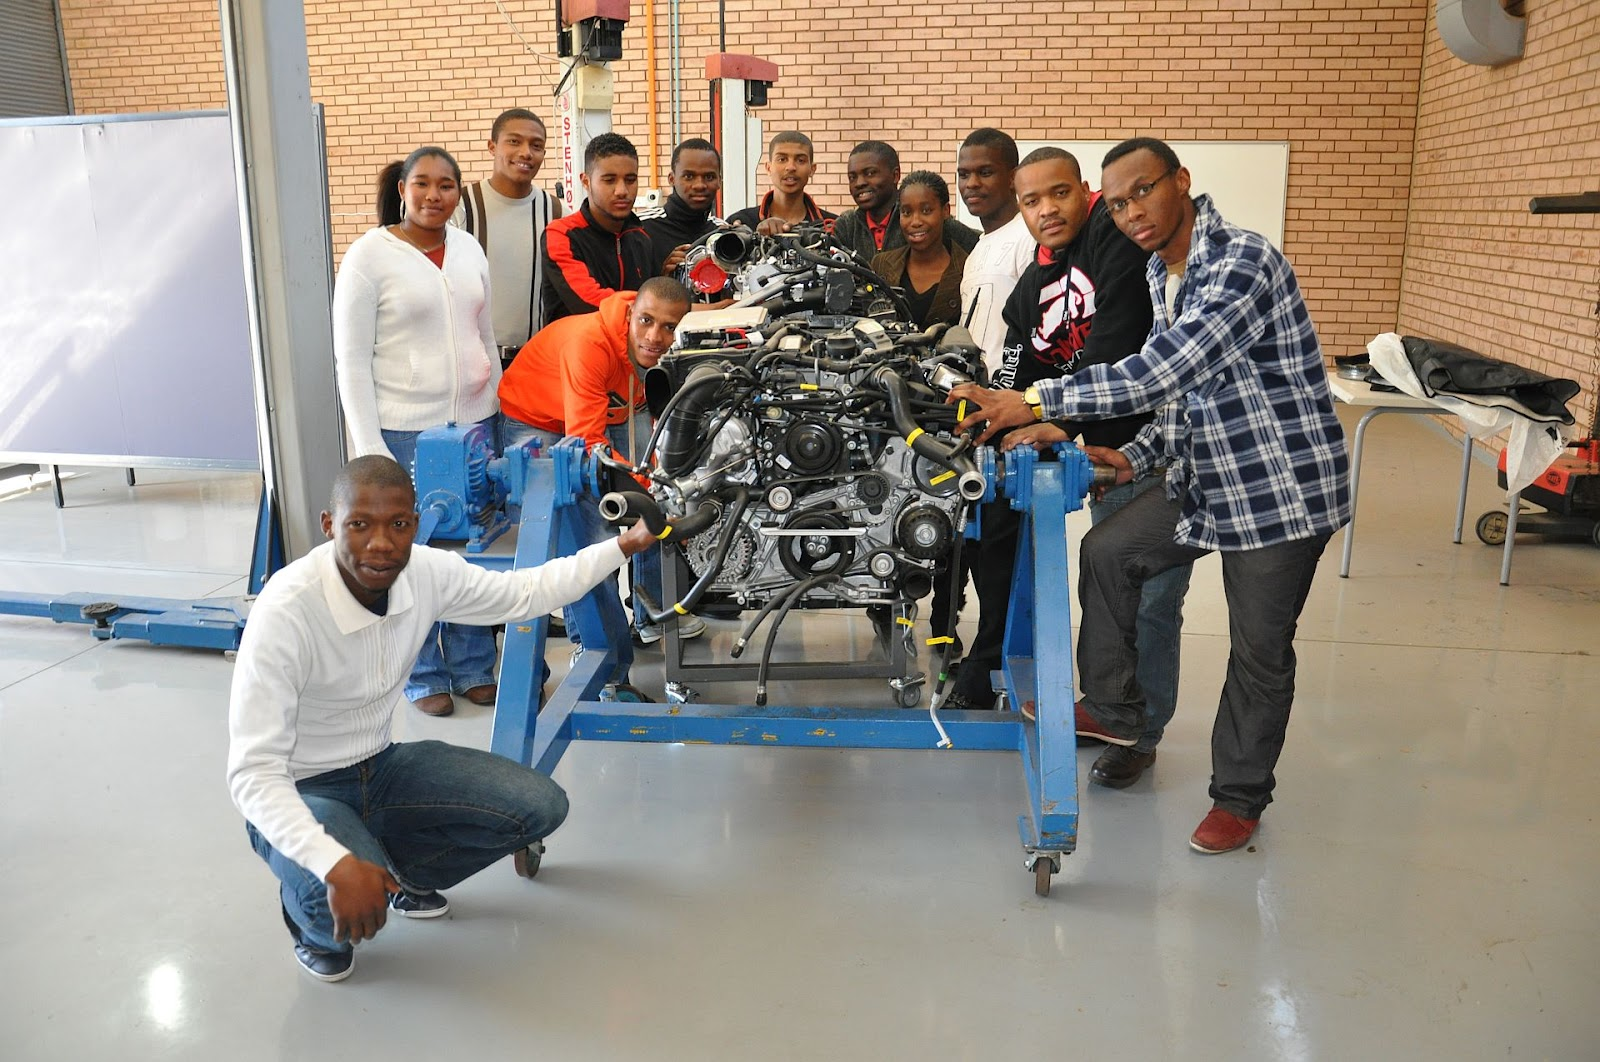 NMI Wants Apprentices In Motor & Diesel Mechanics